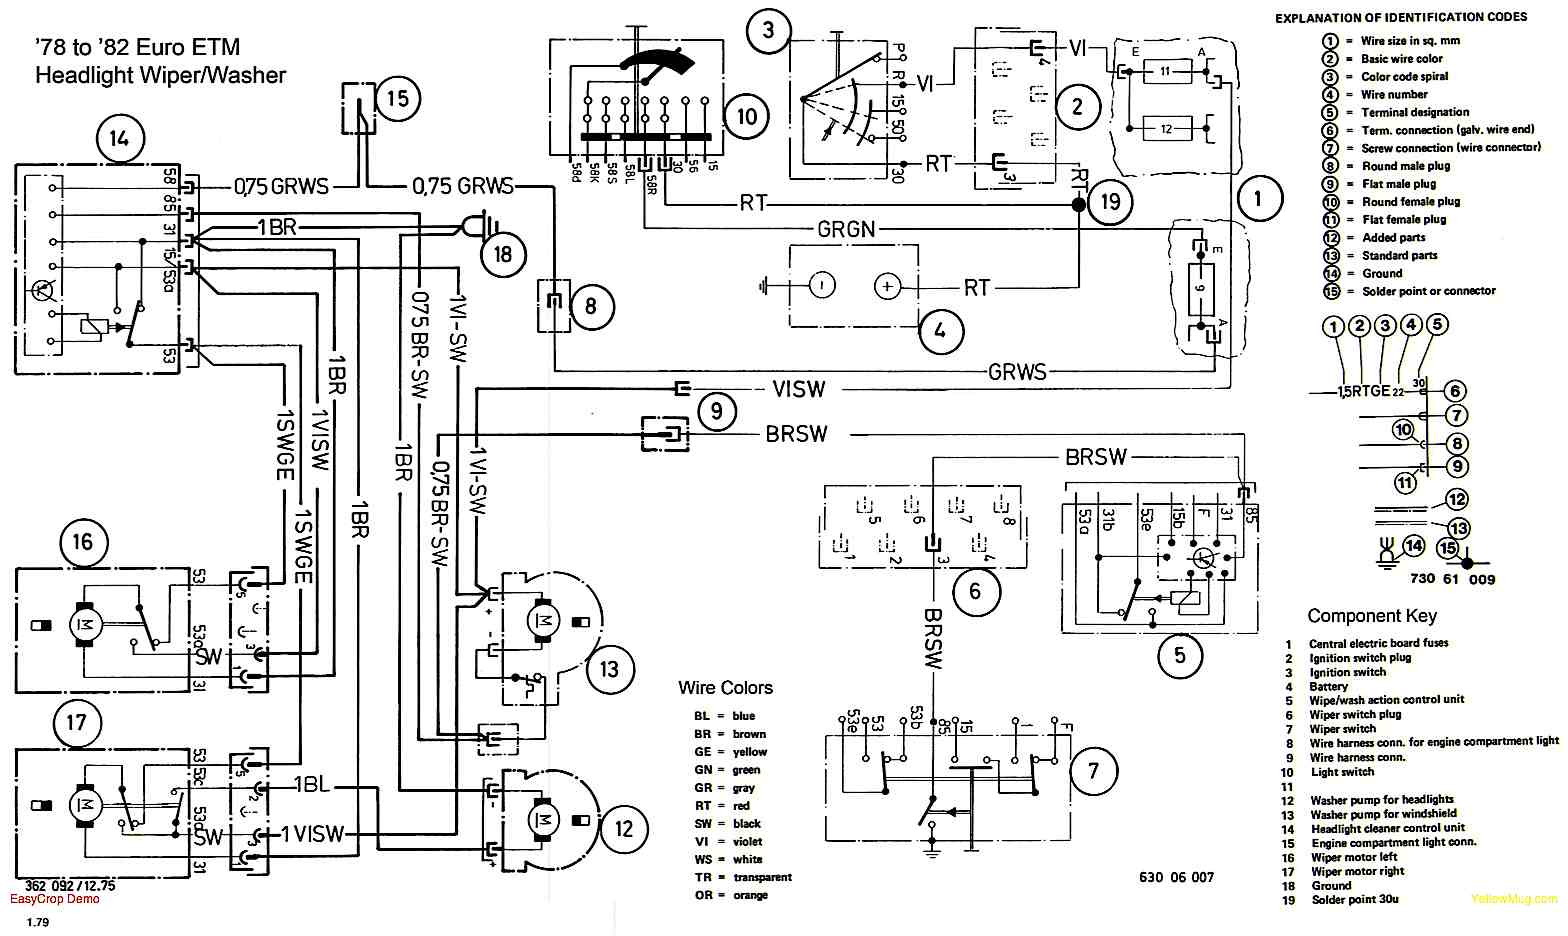 Oil Pump Replacement Cost moreover 1 ra  abs wiring diagram together with 02 BASICS Replacing Your Drive Belt additionally Bmw X3 Air Conditioning Diagram furthermore Suspension. on bmw 5 series wiring diagrams